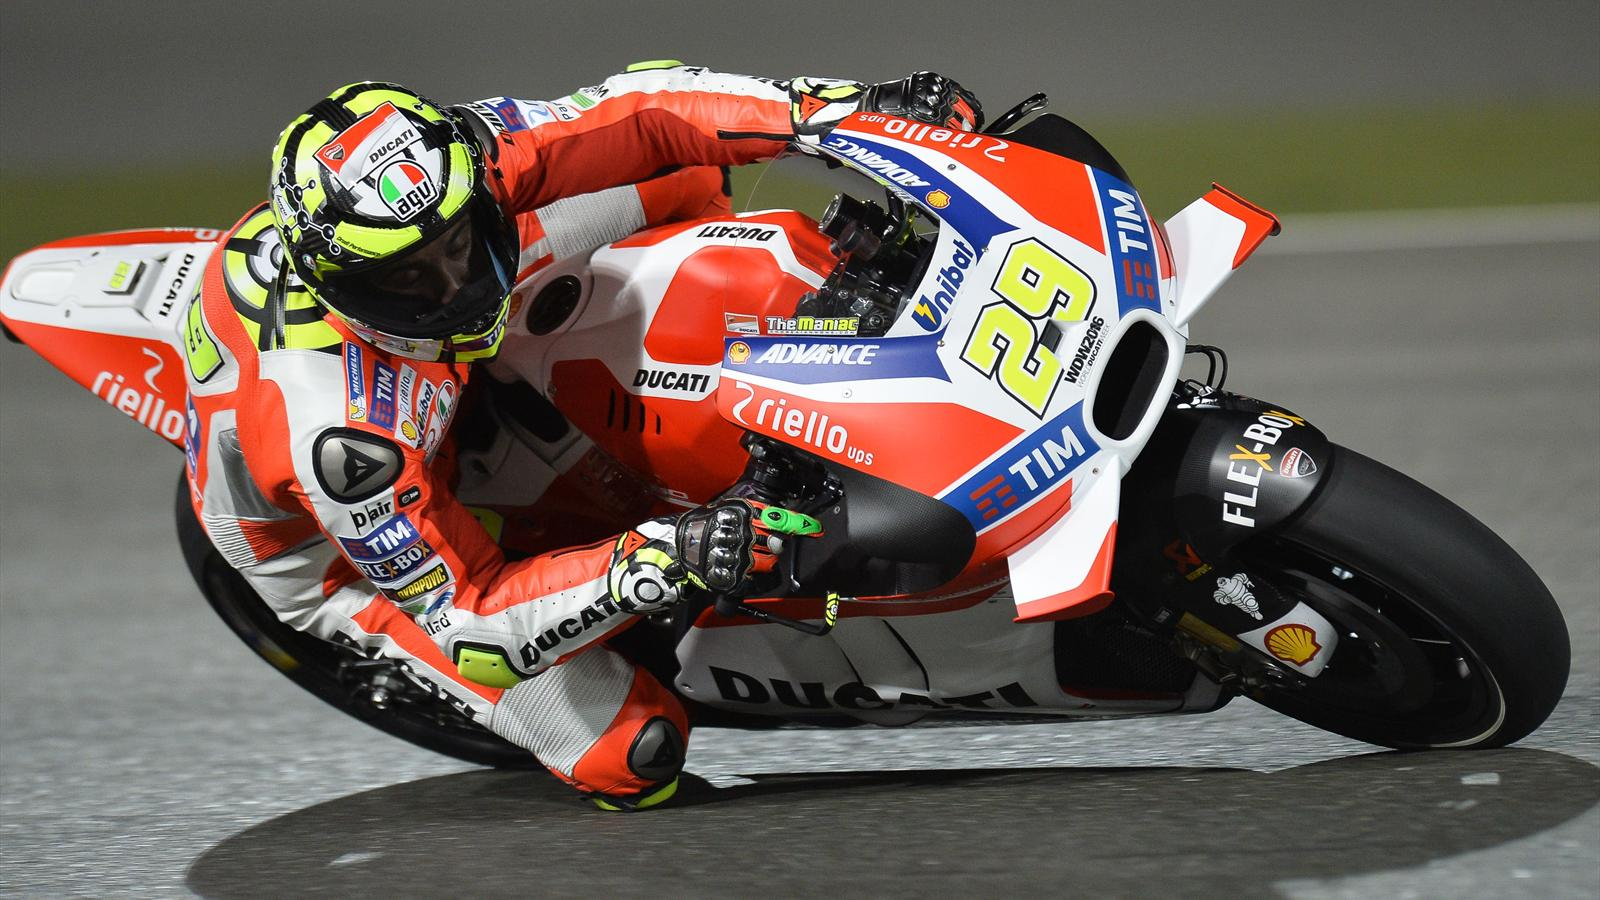 motogp grand prix du qatar andrea iannone ducati brille lors des essais libres 2 pas. Black Bedroom Furniture Sets. Home Design Ideas